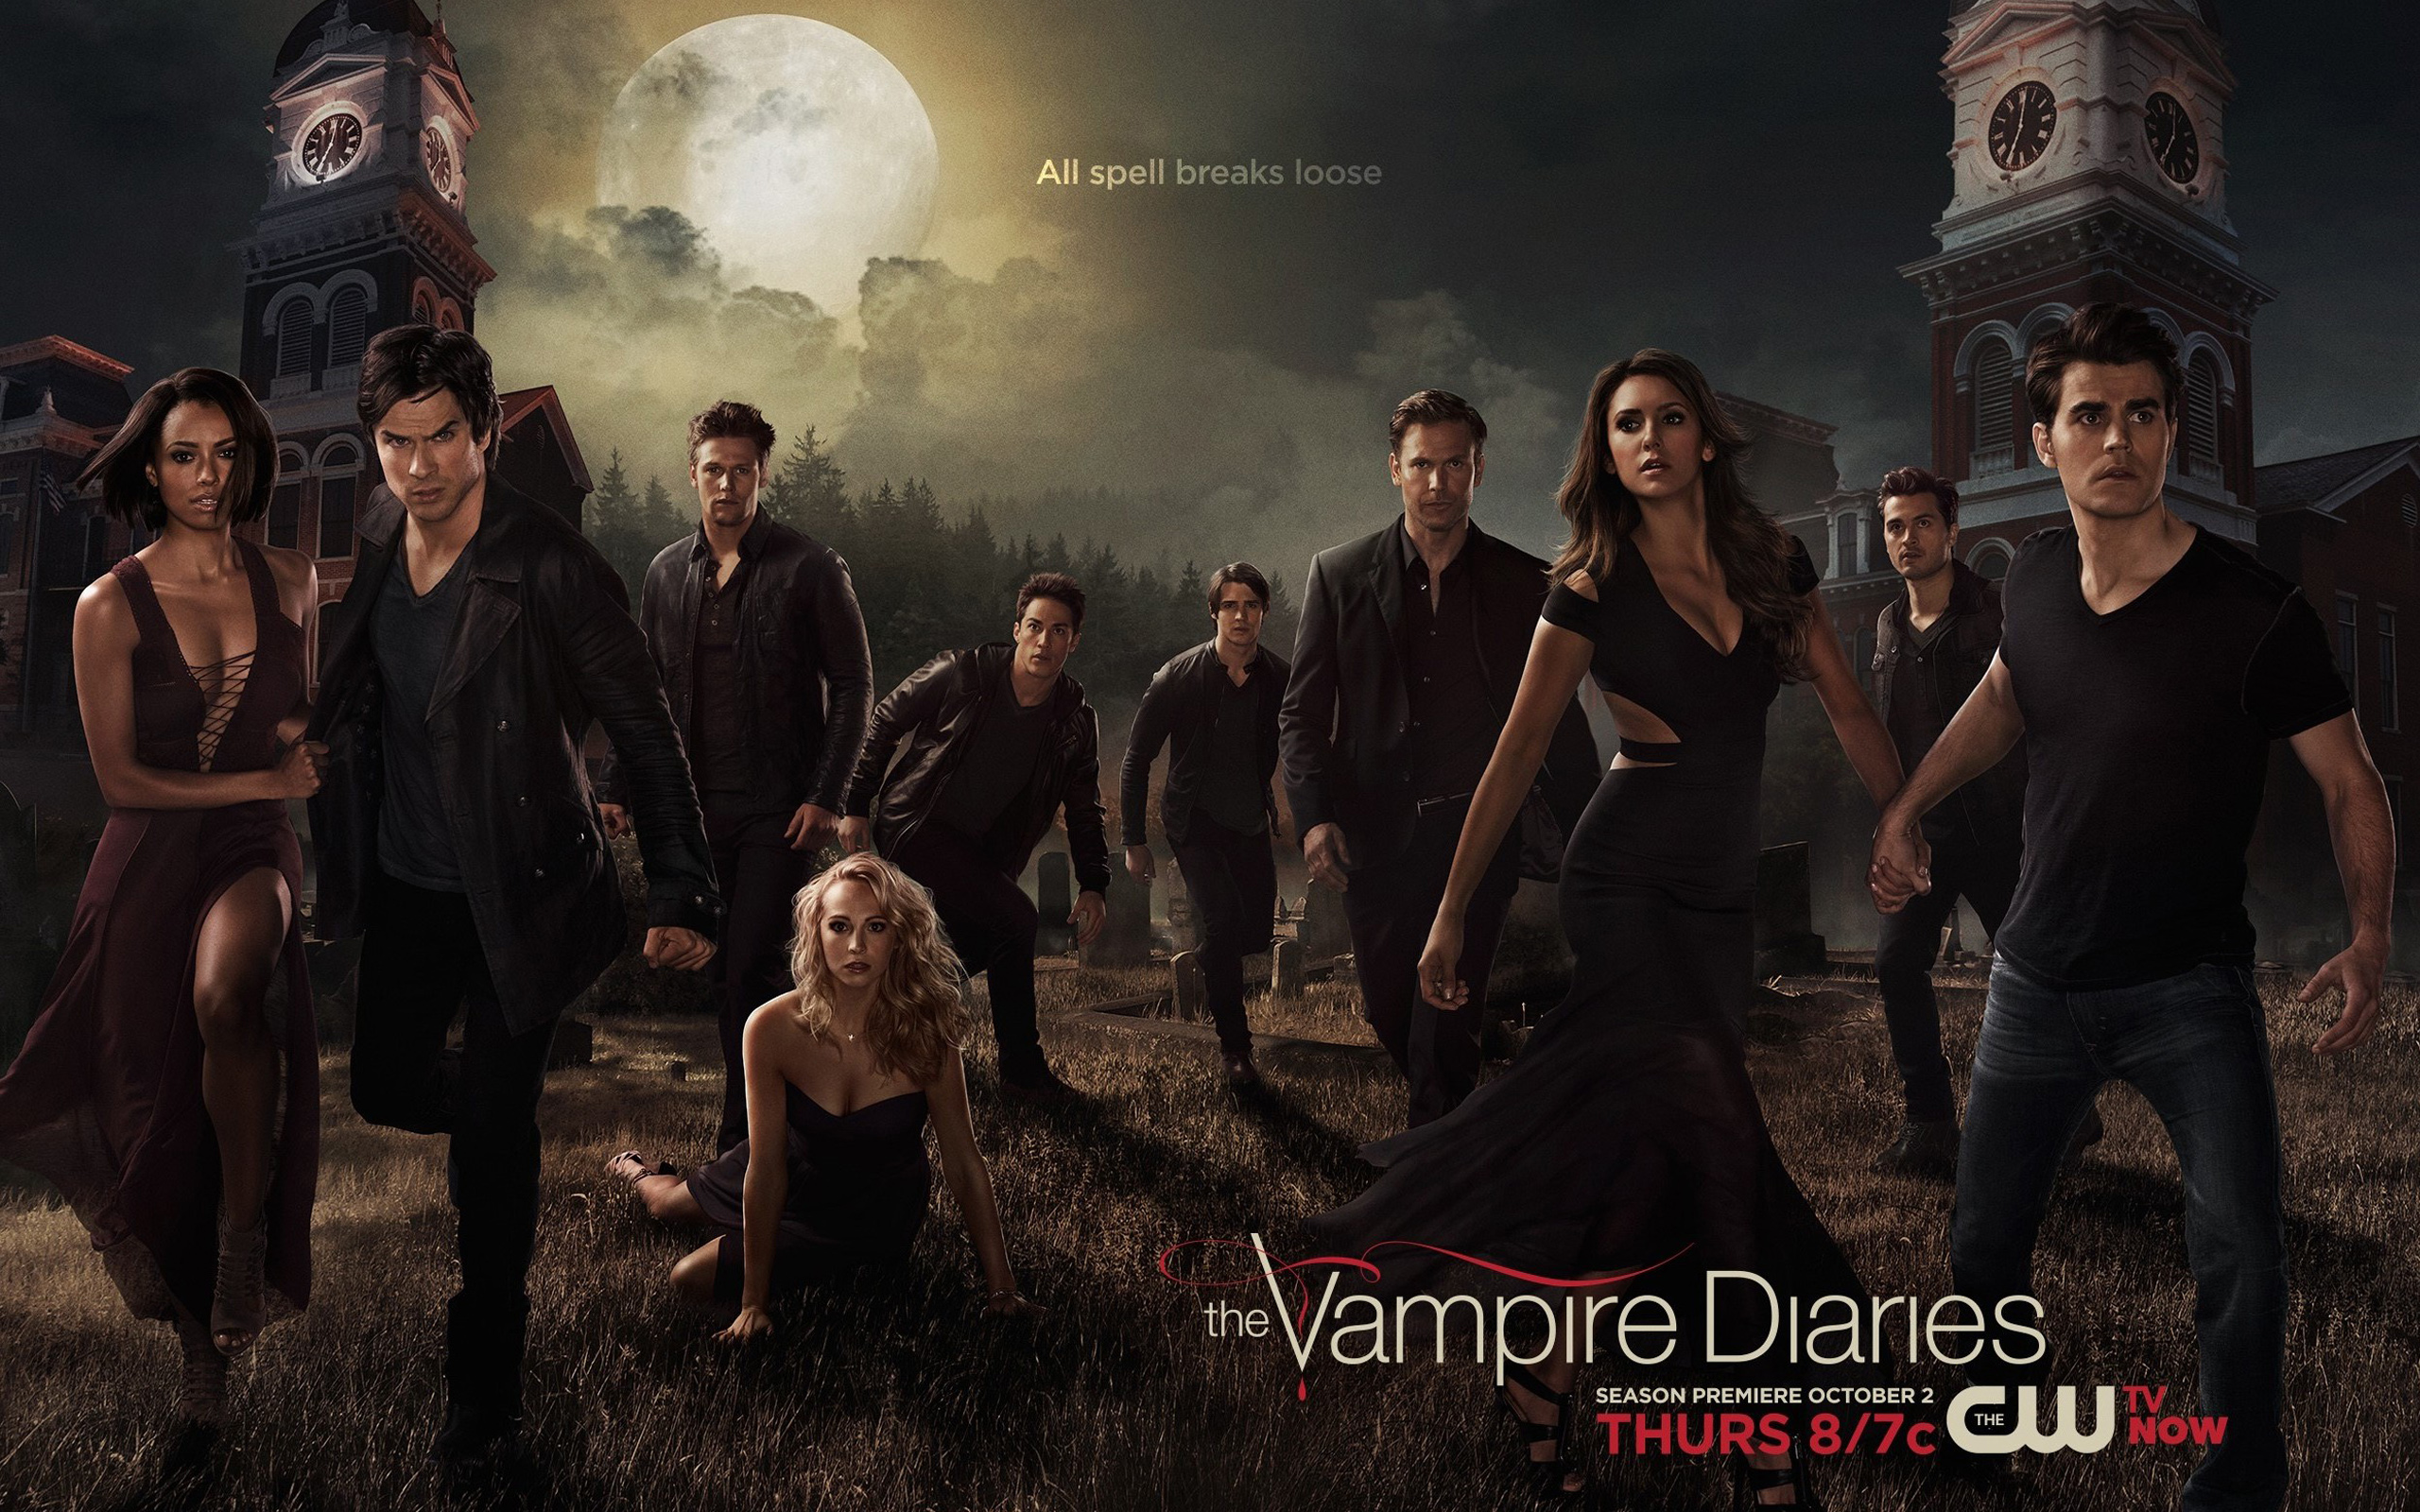 The Vampire Diaries Wallpaper - #20041314 (1920x1080) | Desktop ...